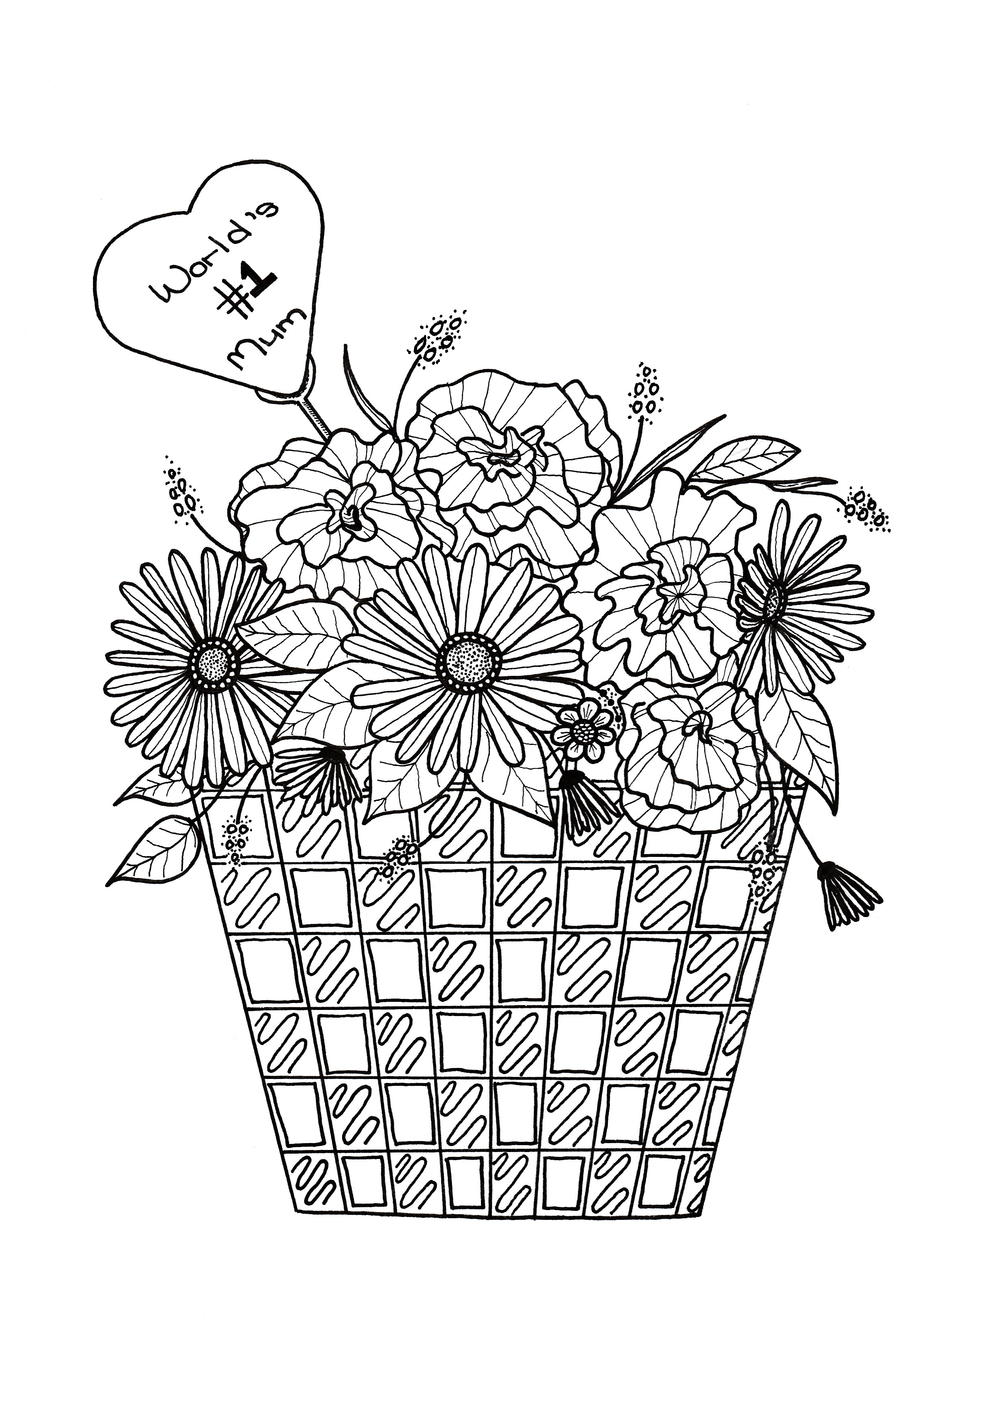 coloring pages of flowers for mom | Flower Basket Mother's Day Coloring Page | FaveCrafts.com